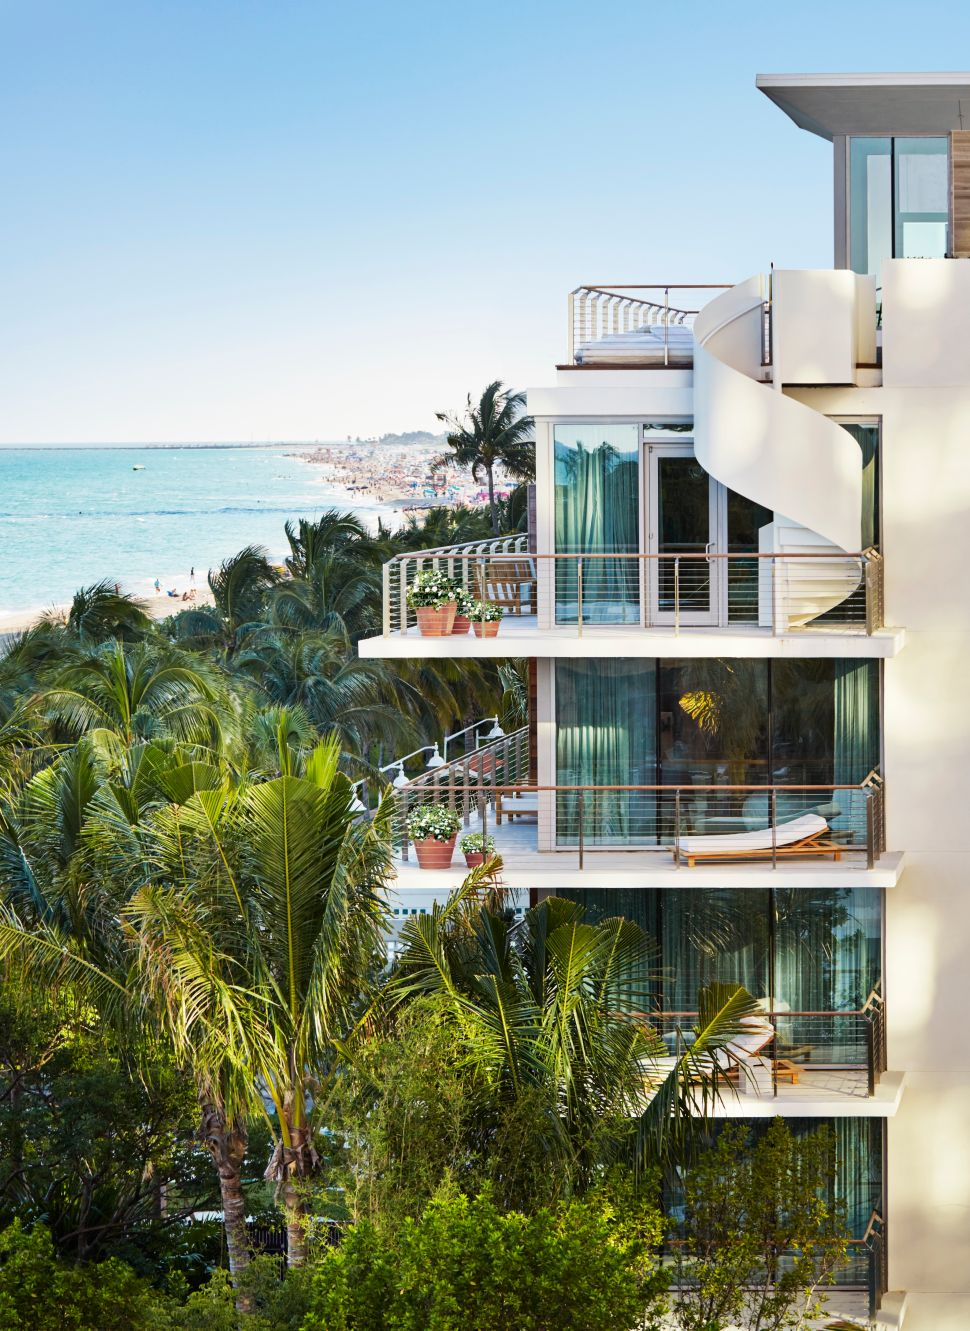 The Miami EDITION Offers a Winter Wellness Escape, With Room for Indulgence